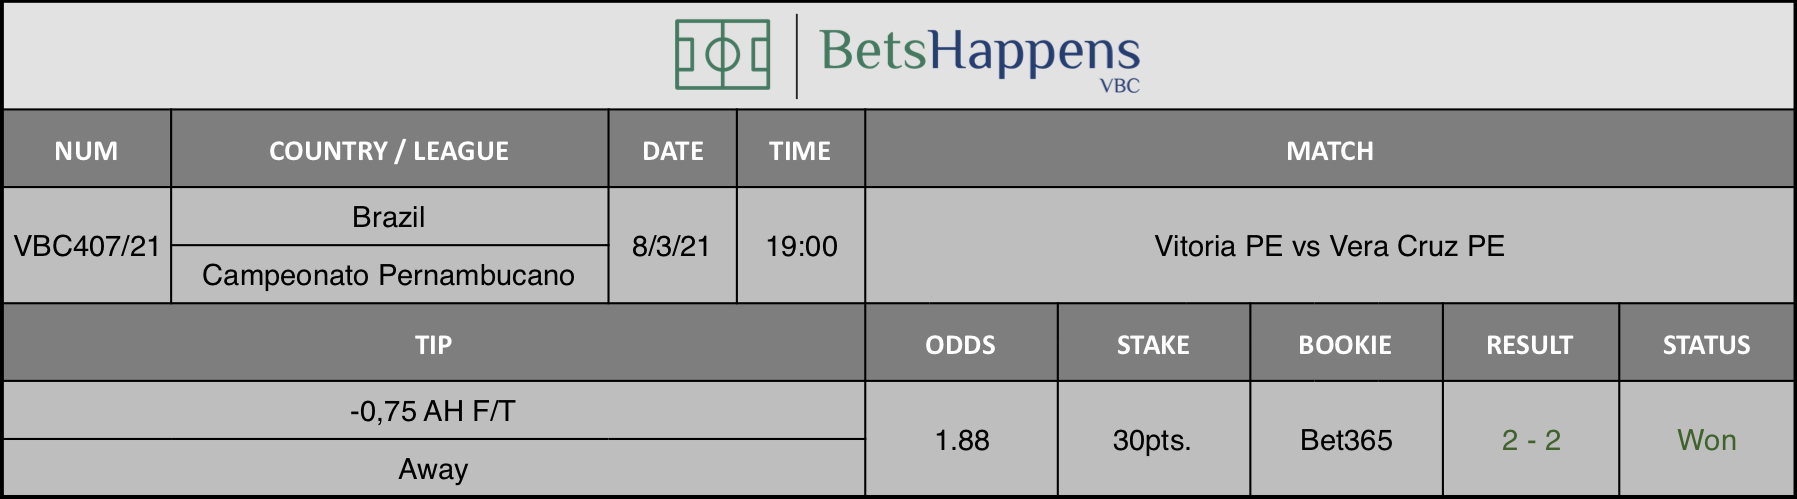 Results of our tip for the Vitoria PE vs Vera Cruz PE match where -0,75 AH F/T Away is recommended.